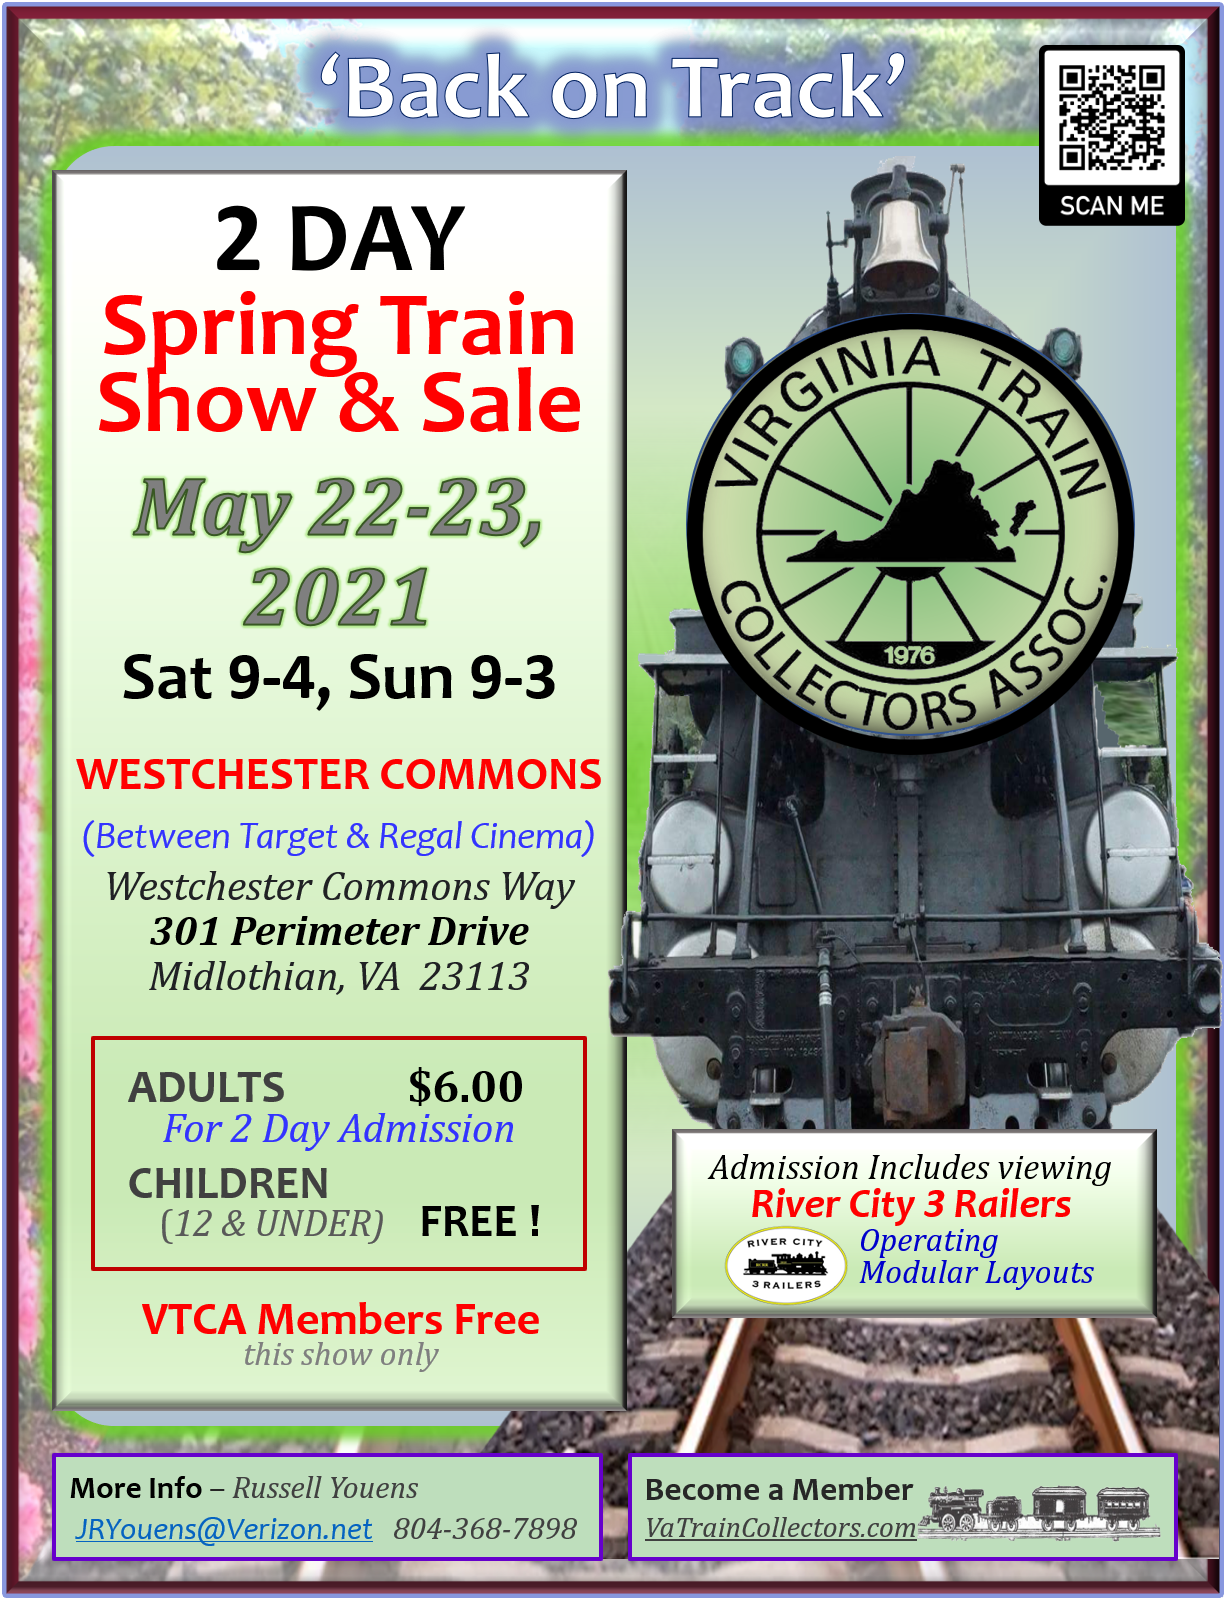 2 DAY Spring Train Show